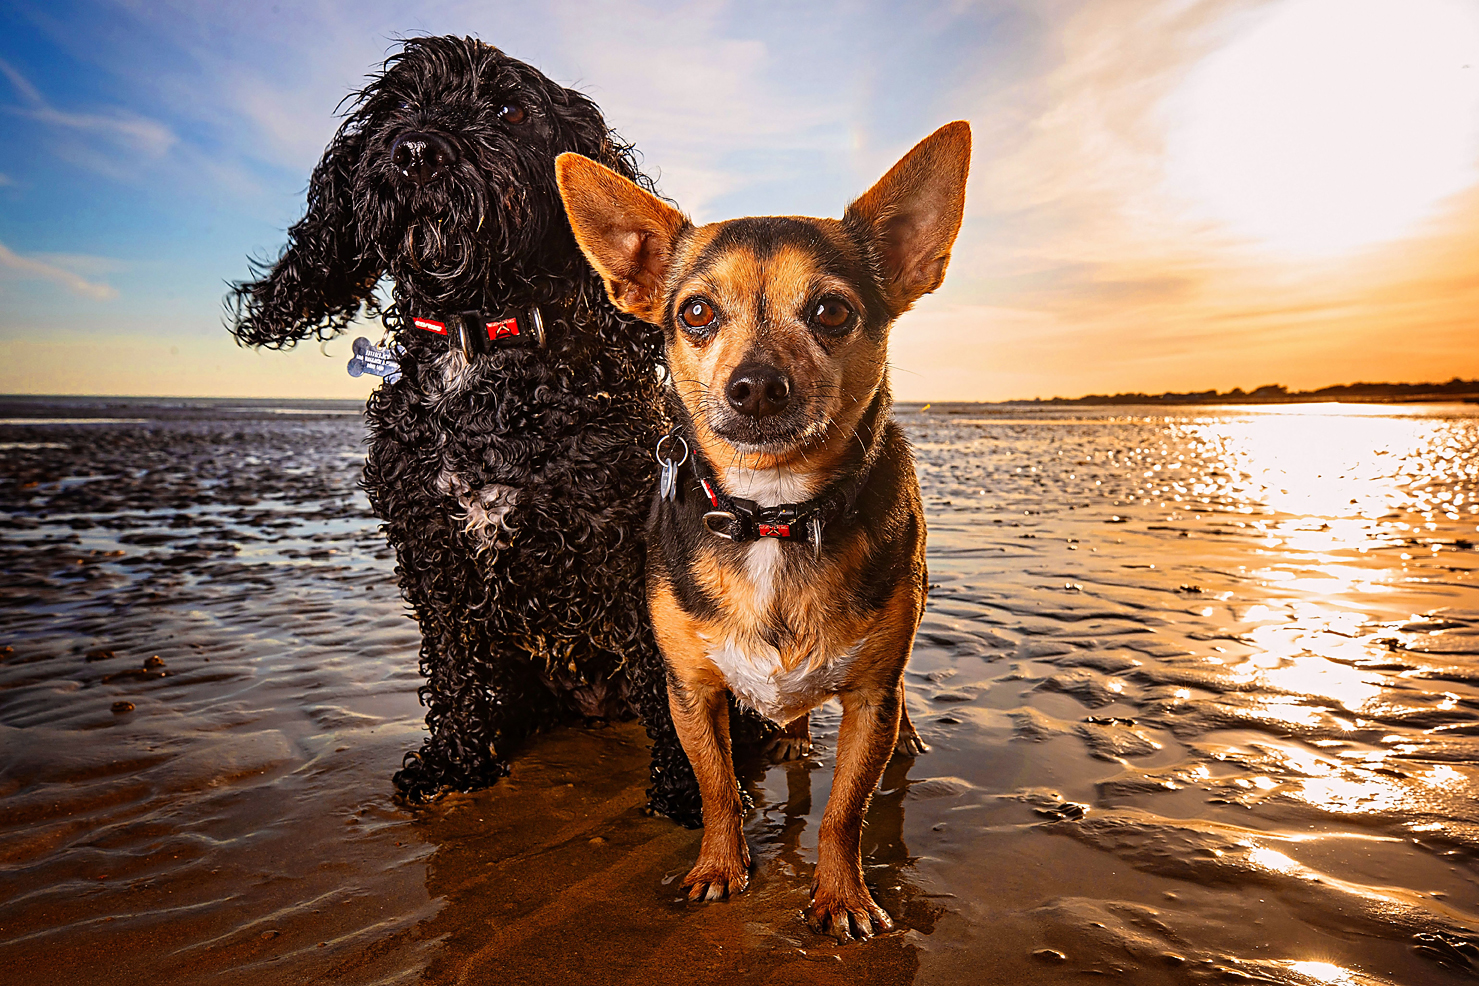 Dog friends photographed together on Ferring beach at sunset in Sussex, pet photography shoot, dog portraits